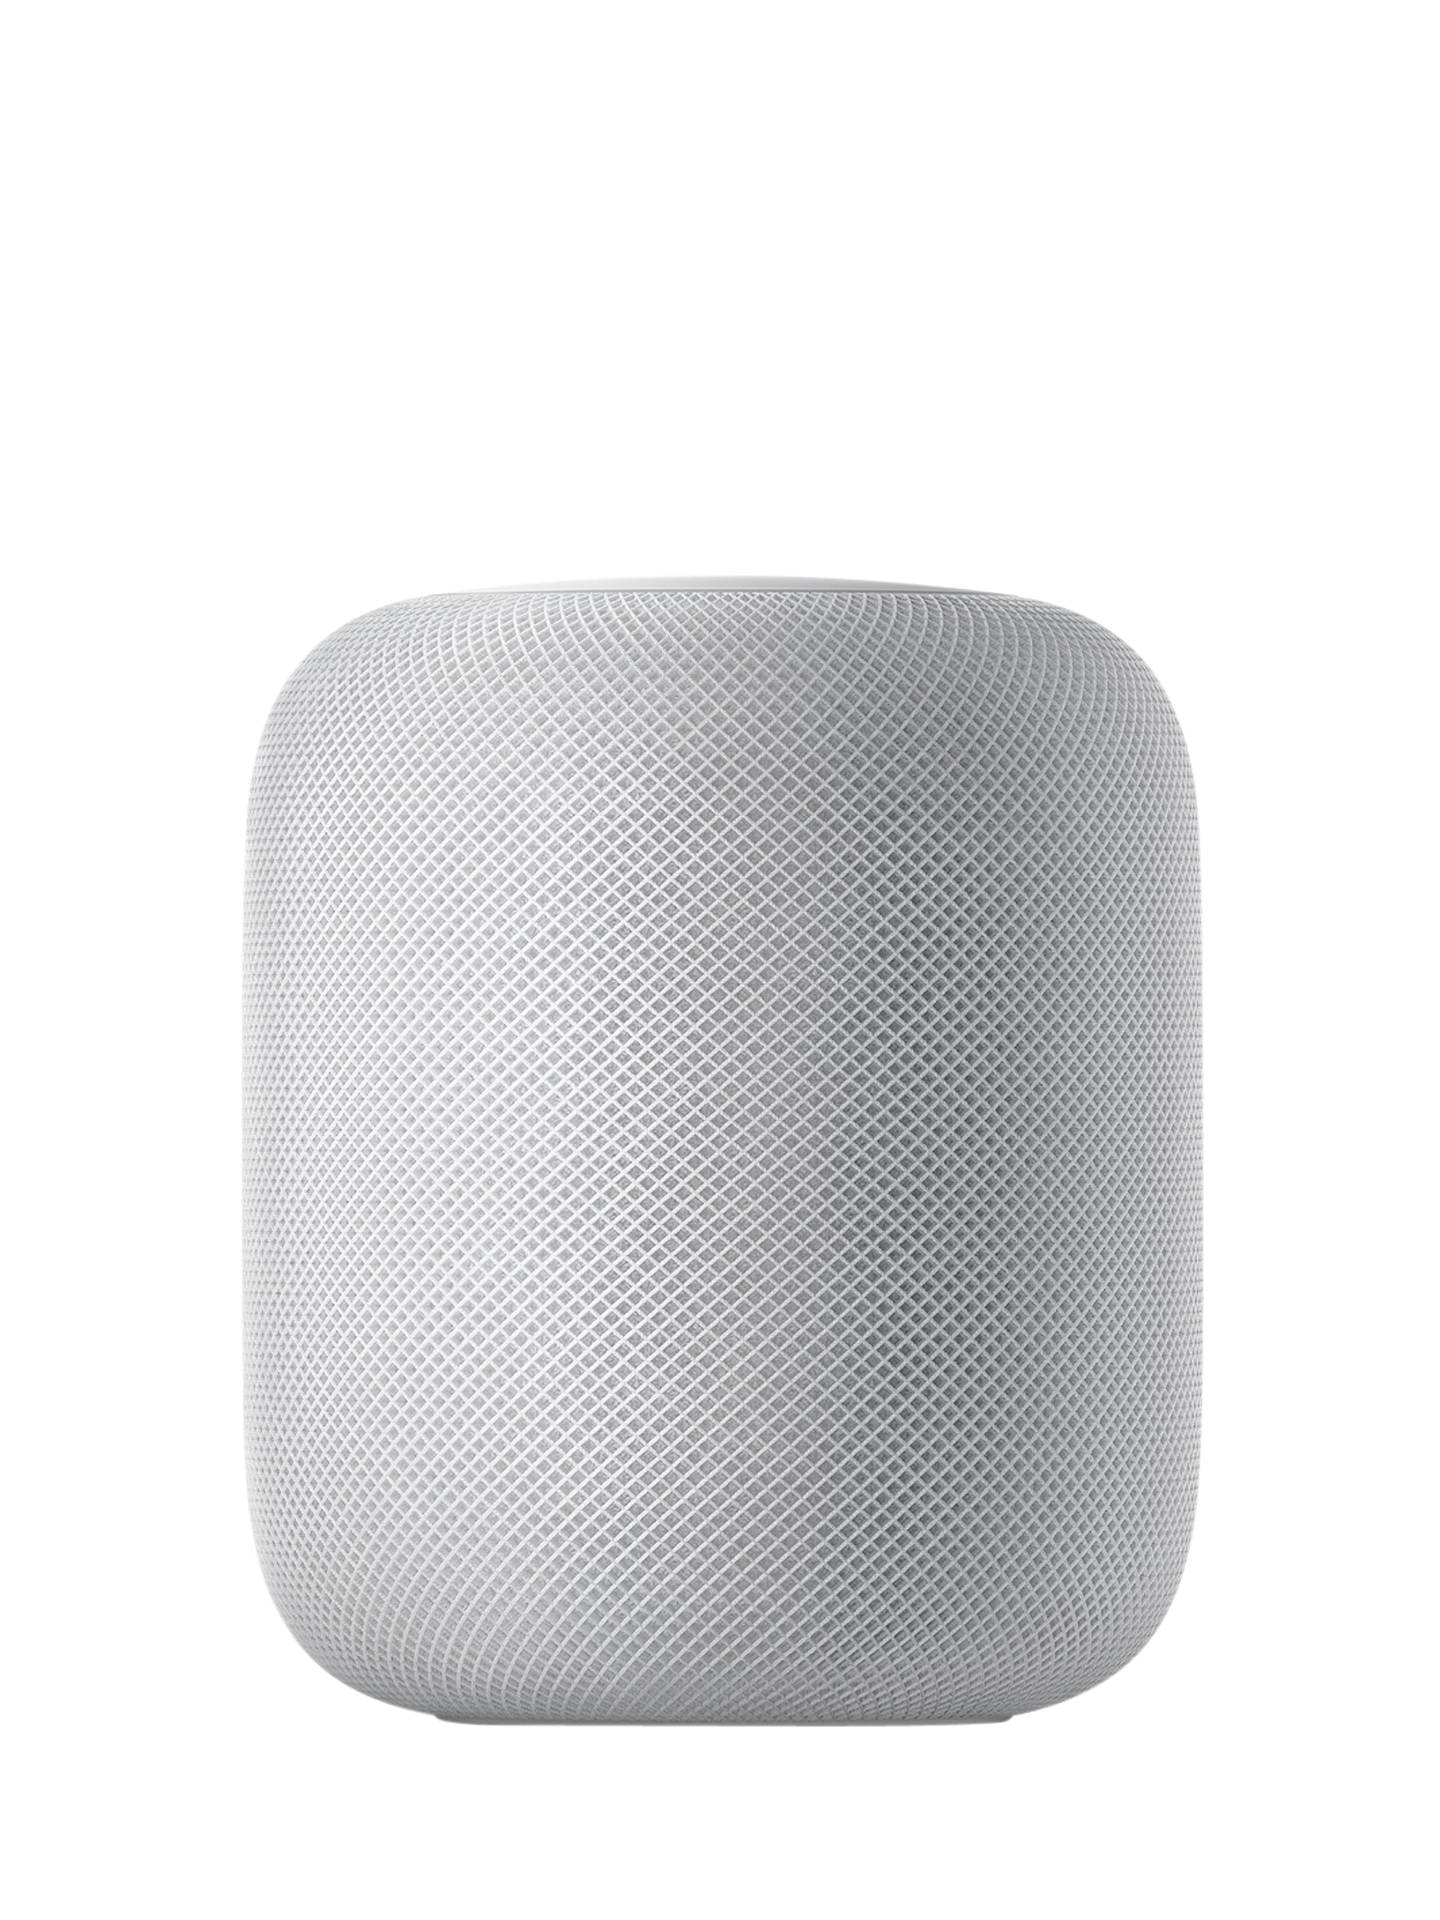 Buy Apple HomePod, White Online at www.retrievedmagnetic.com